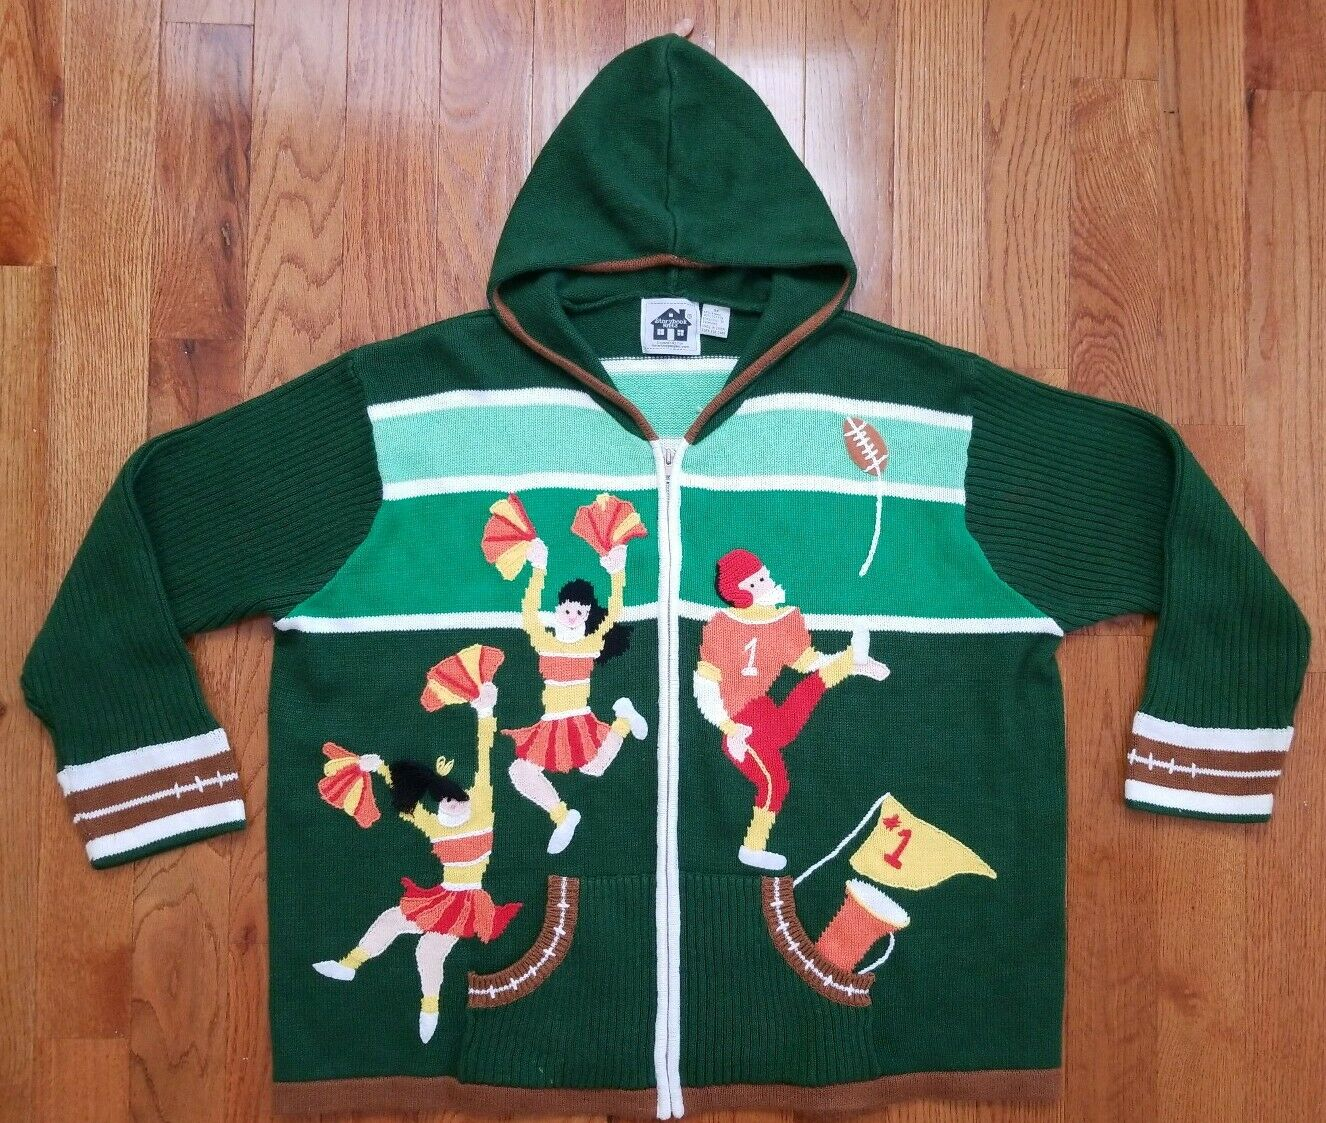 Storybook Knits HSN Football Players Cheerleading Hooded Sweater Size 3XL